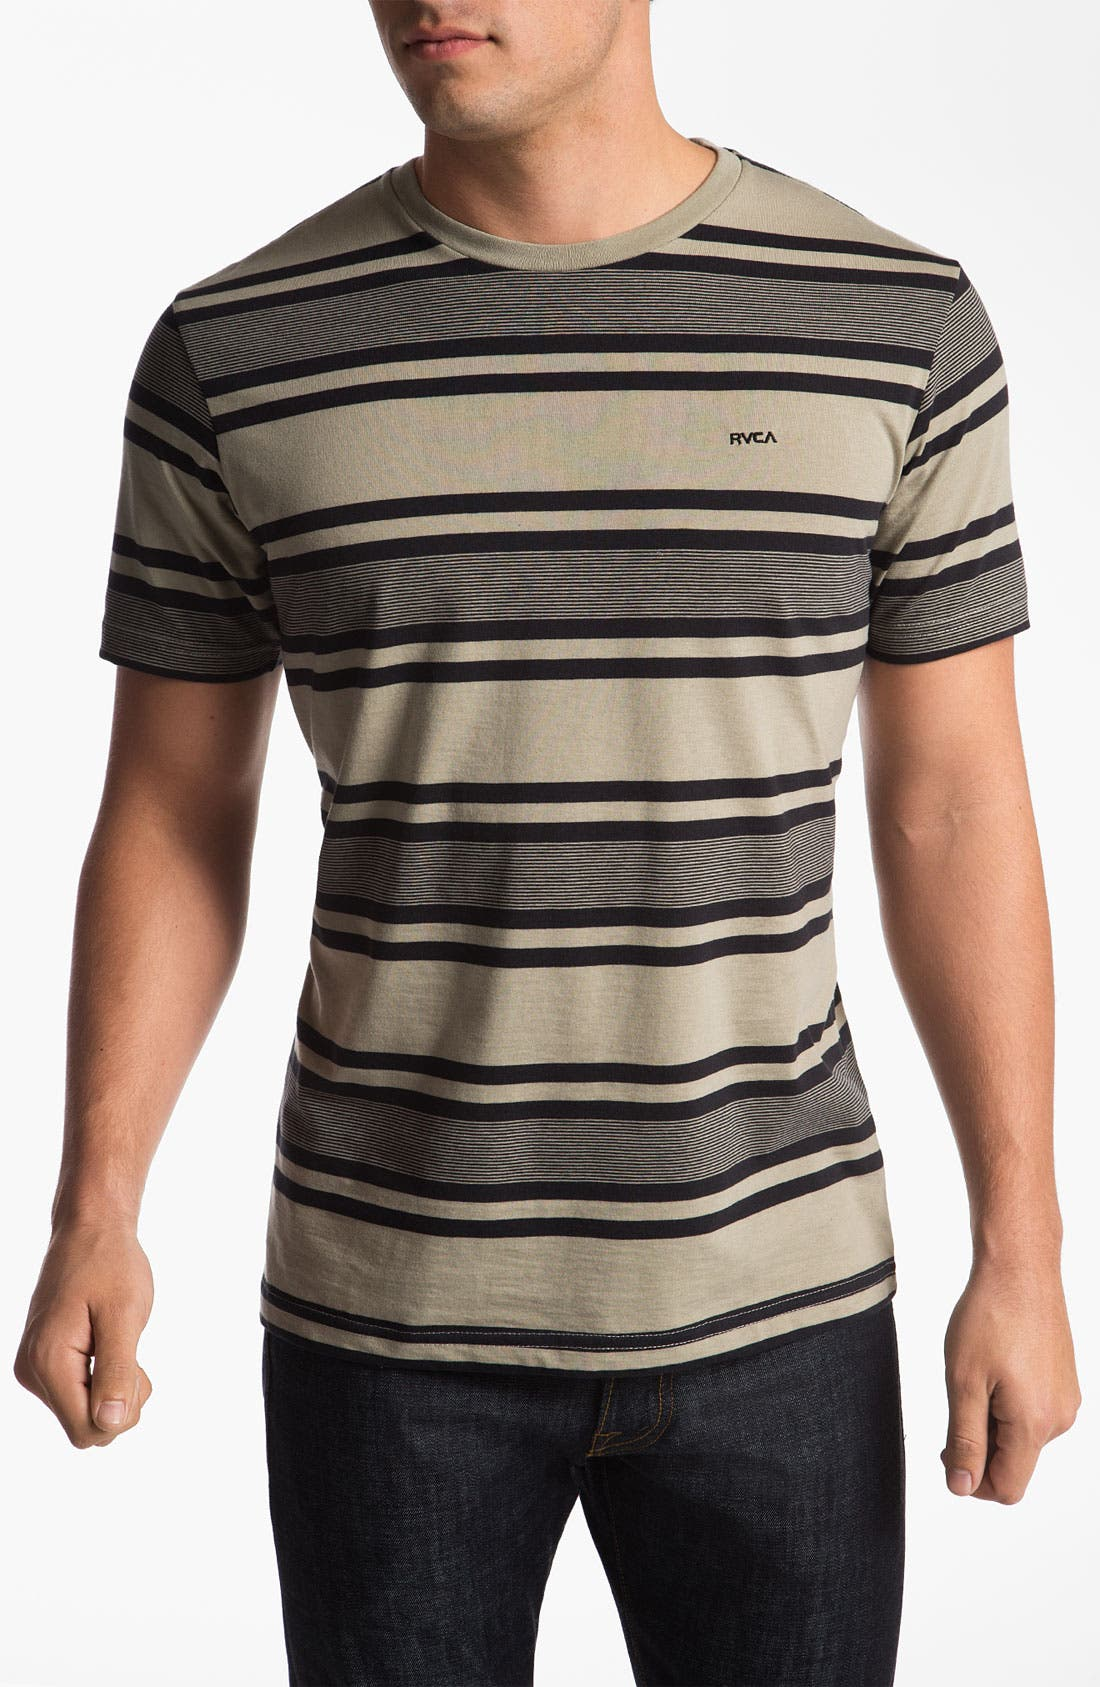 Alternate Image 1 Selected - RVCA 'SOS' Stripe Crewneck T-Shirt